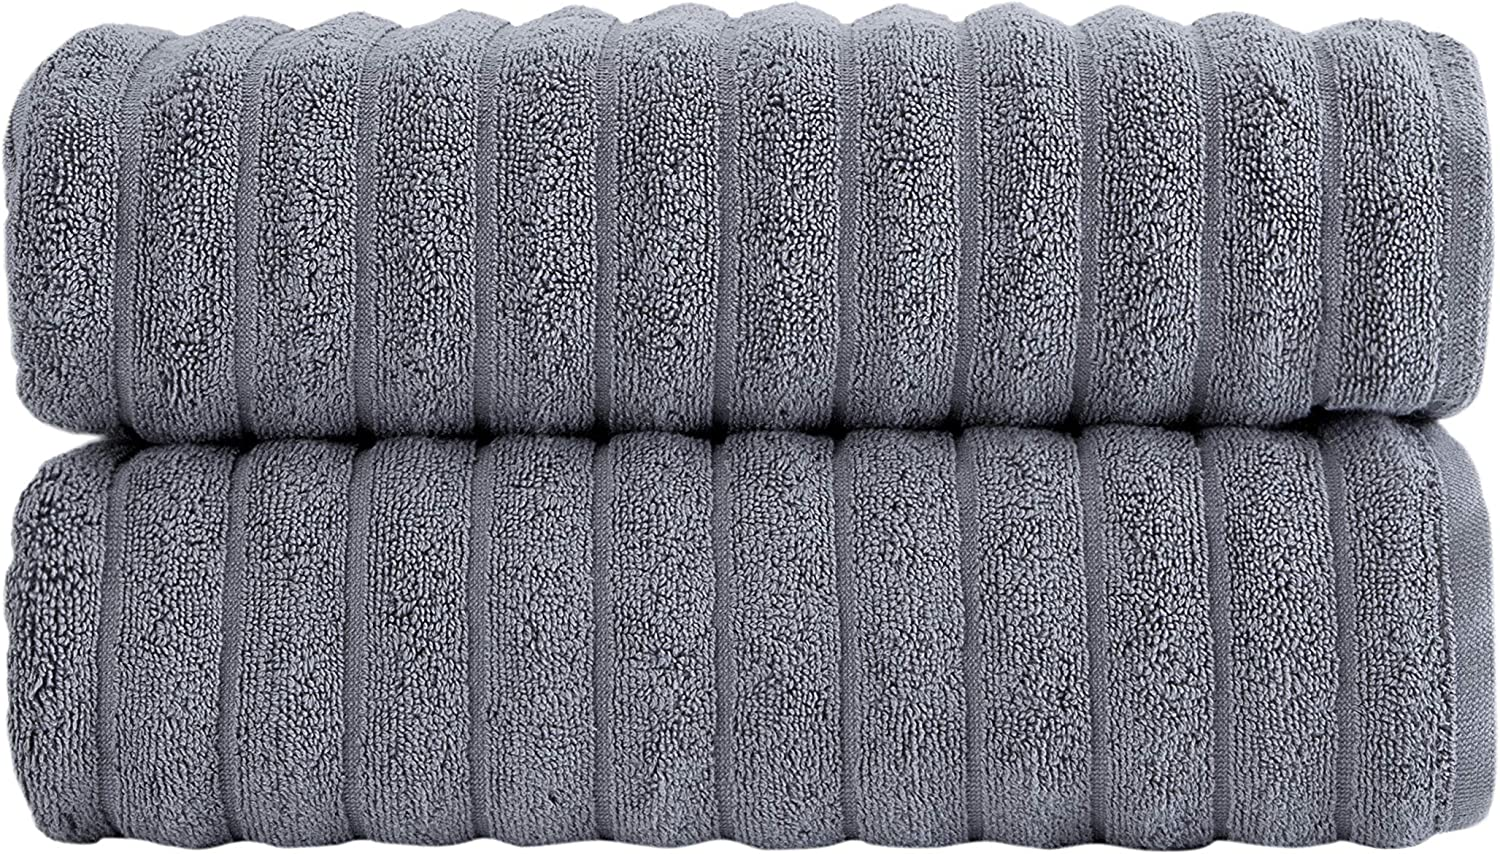 Classic Turkish Towels Luxury Ribbed Bath Towels - Soft Thick Jacquard Woven 2 Piece Bath Set Made with 100% Turkish Cotton (Grey, 27x54 Bath Towels)